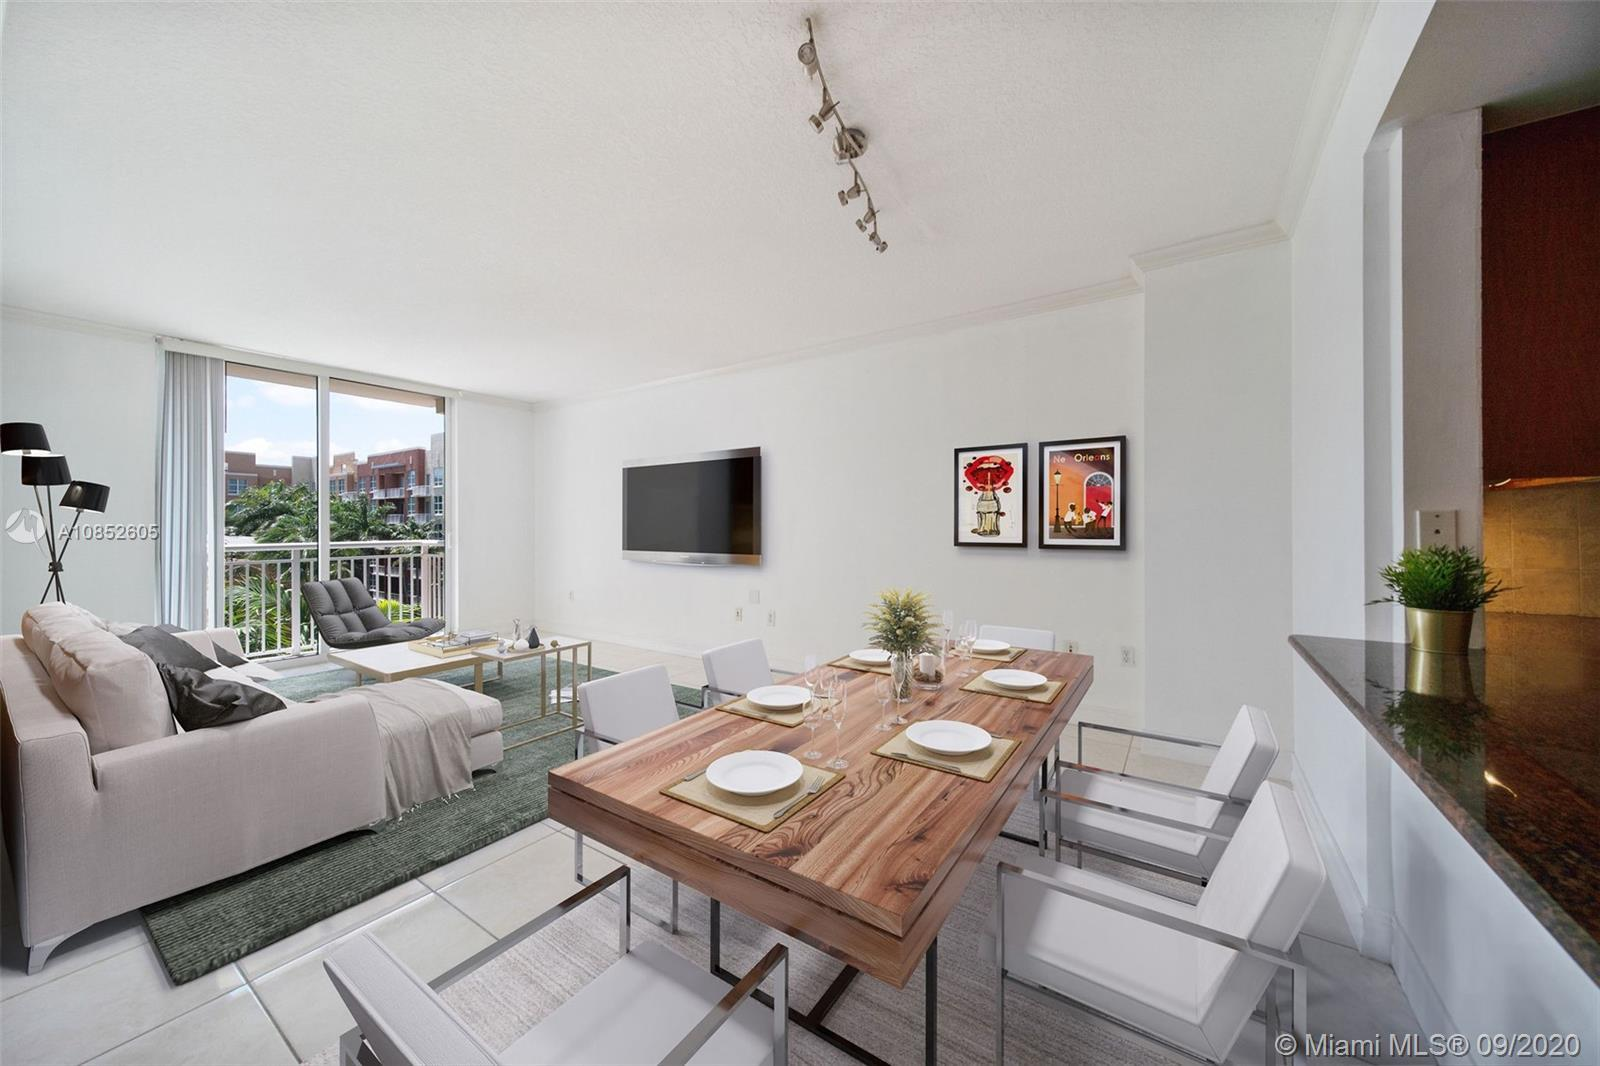 Cité on the Bay is the best Edgewater location. This turn key charming 1 bedrooms 1 bath condo with